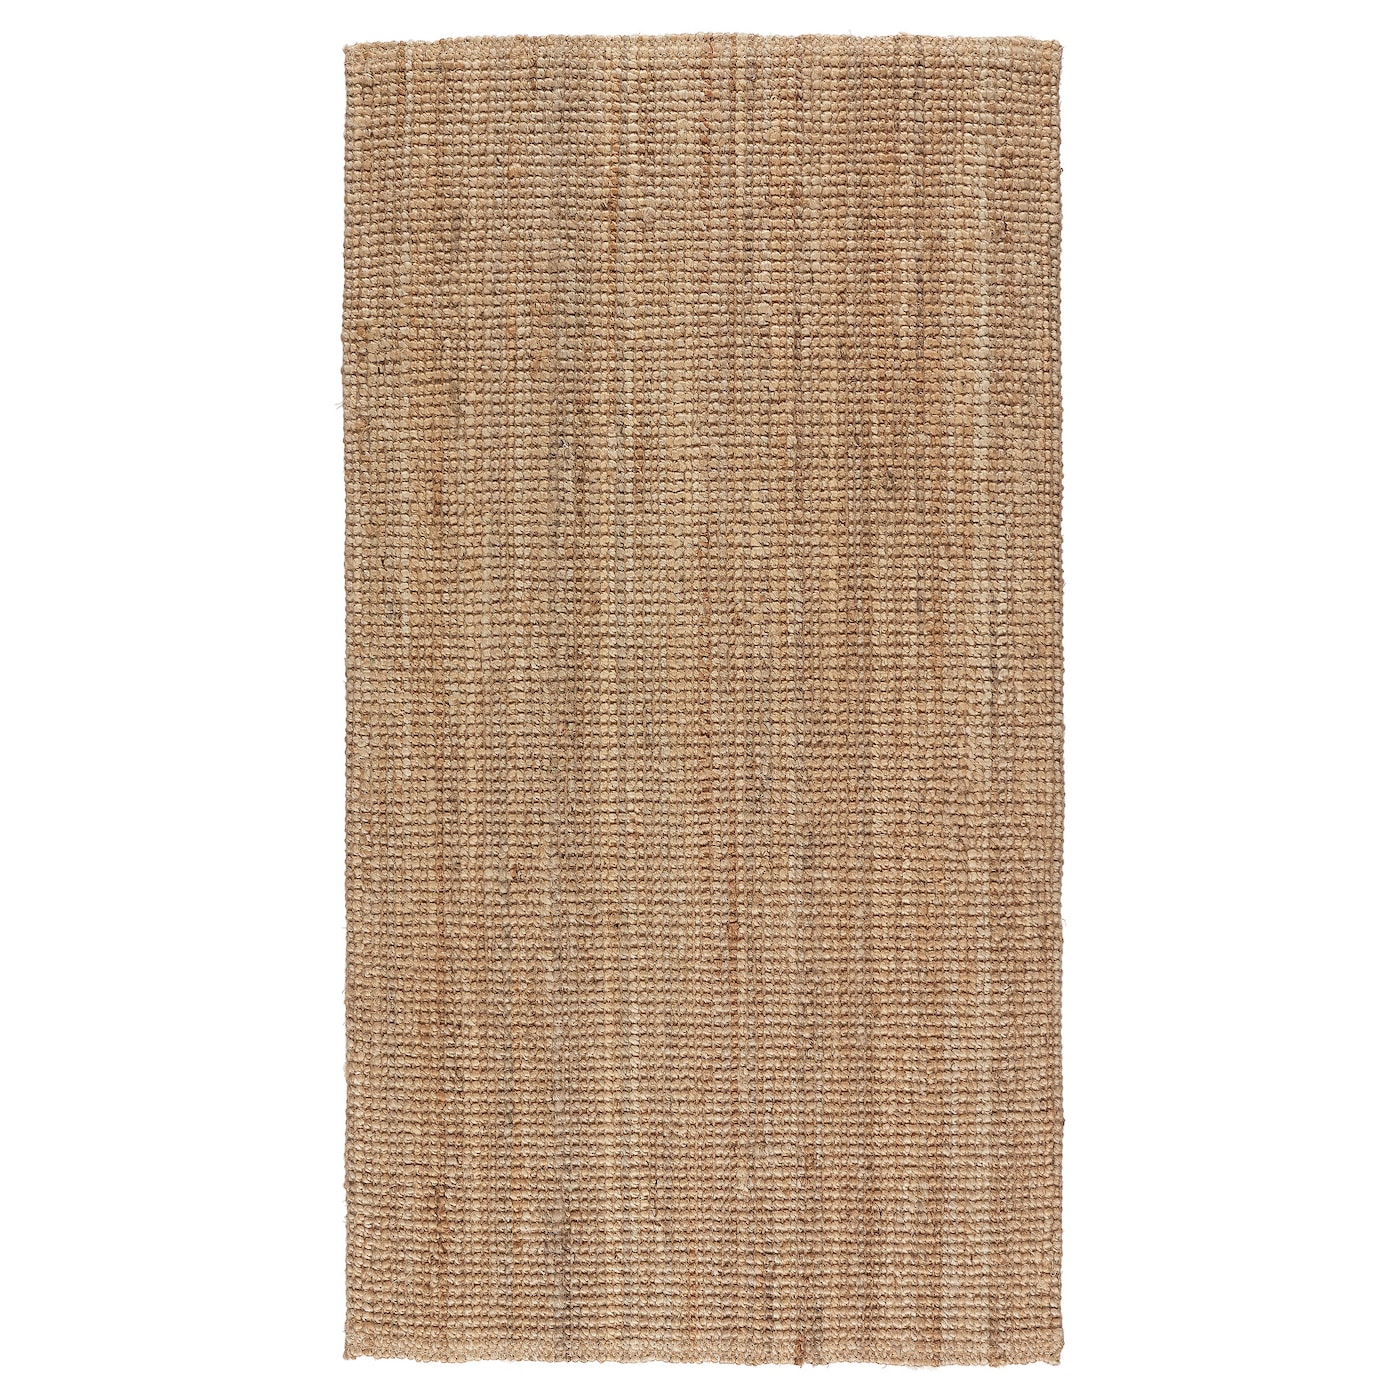 Lohals rug flatwoven natural 80x150 cm ikea for Ikea rugs